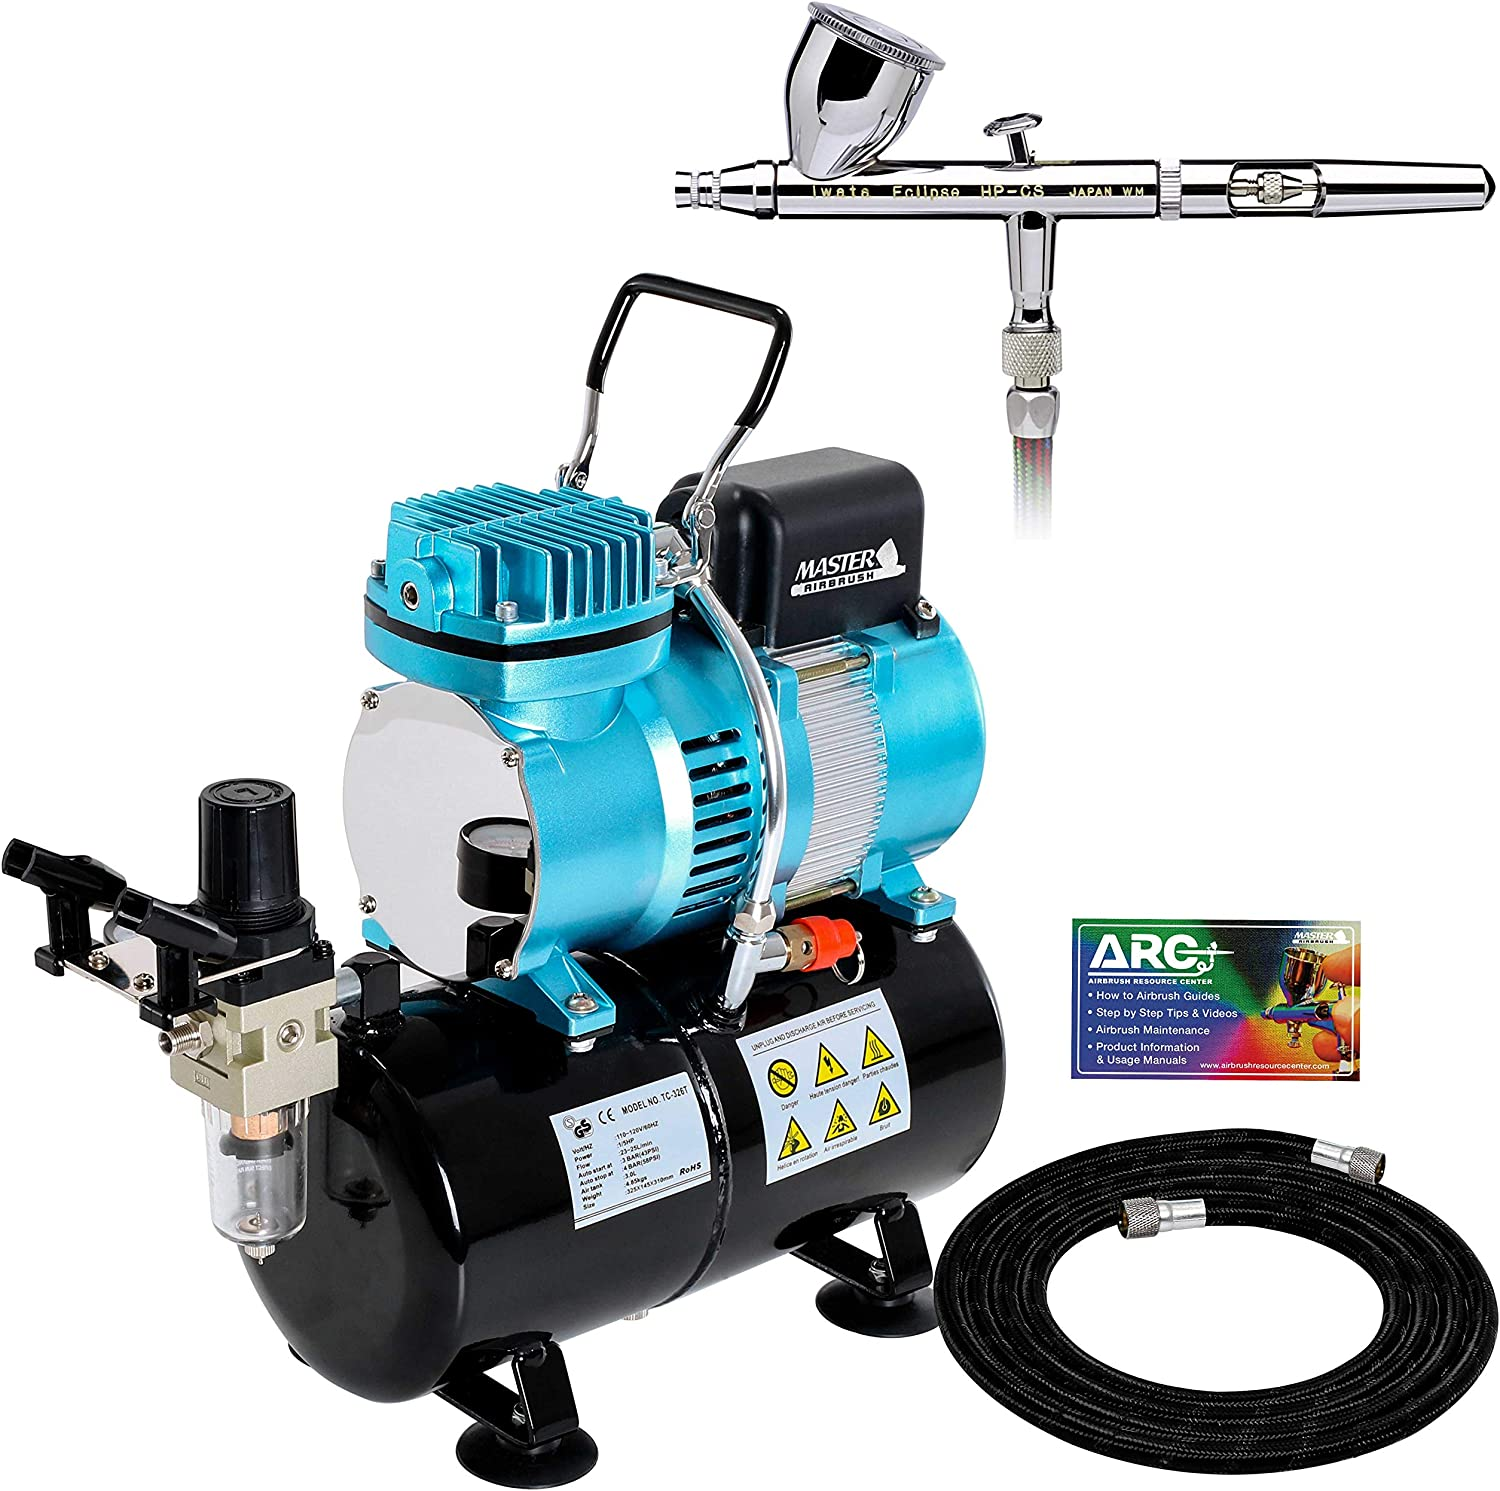 Iwata Eclipse HP CS Airbrush Set with 1/5 hp Cool Runner II Dual Fan Air Tank Compressor System Kit, Professional All-Purpose Dual-Action Gravity Feed Airbrush, 0.35mm tip, Hose, Holder, How-to Guide